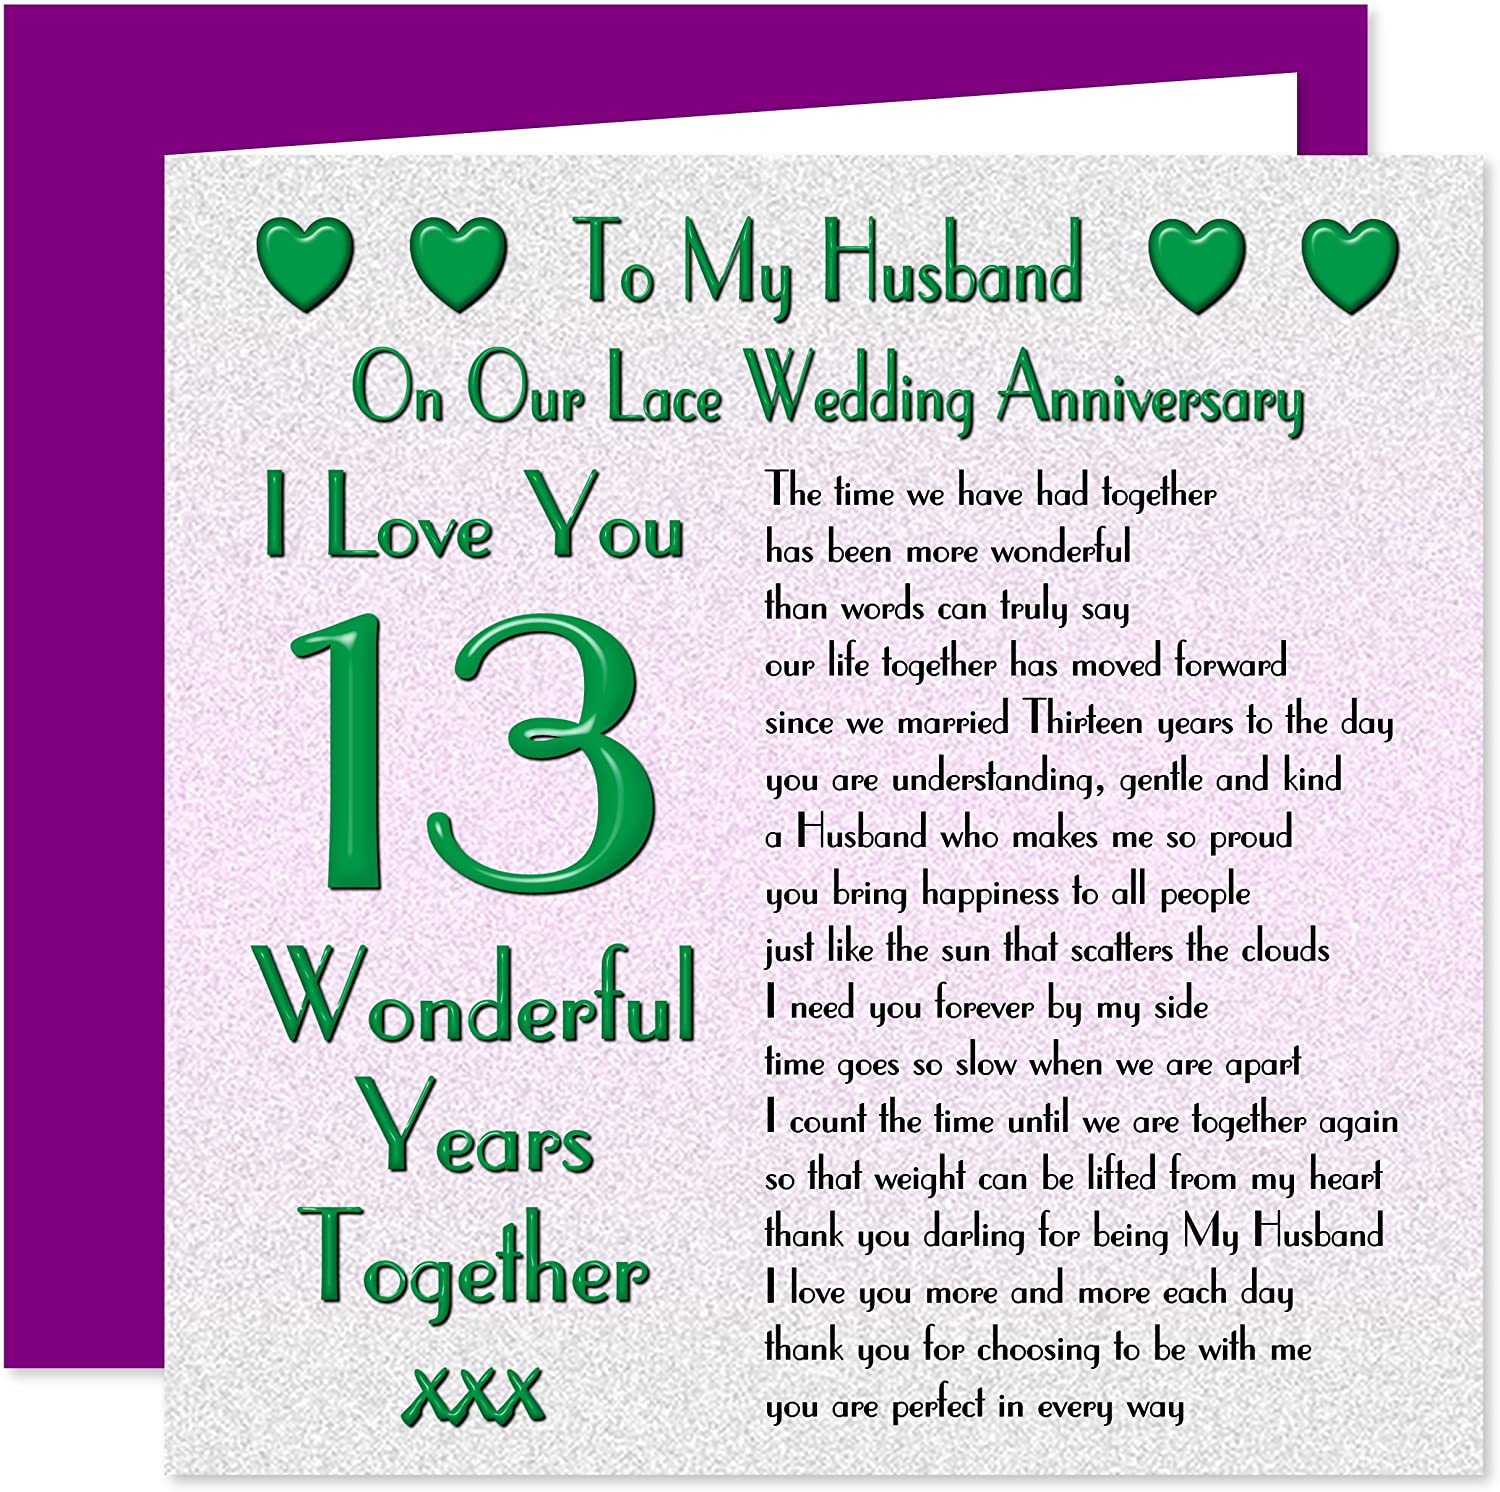 My Husband 8th Wedding Anniversary Card - On Our Lace Anniversary - 8  Years - Sentimental Verse I Love You